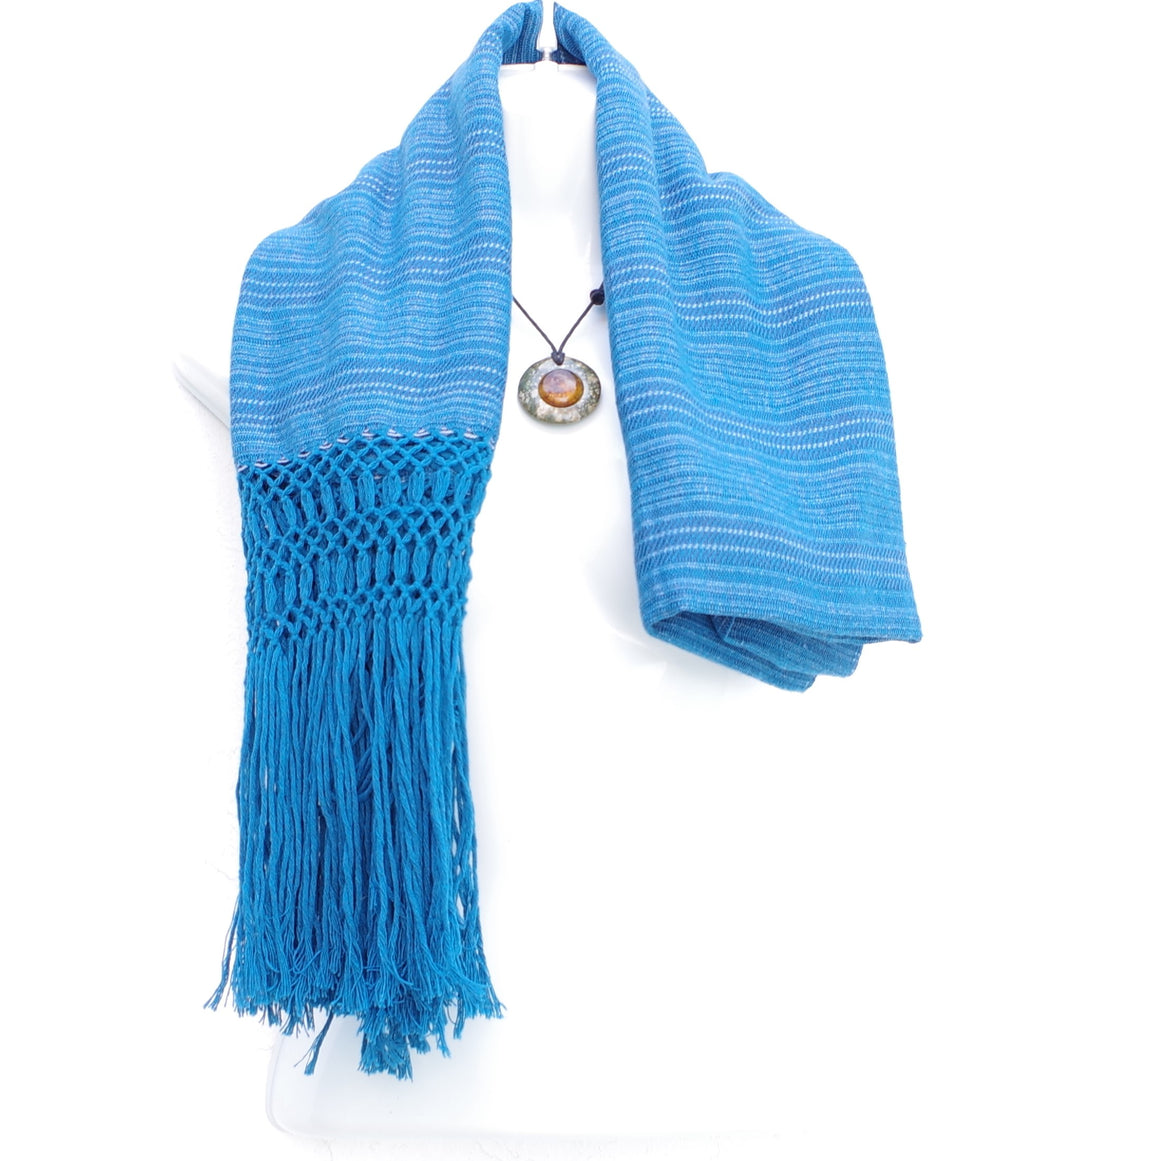 Mayan Copal Blue Mexican Rebozo Shawl with Fringes Embroidered with Cotton and Yard